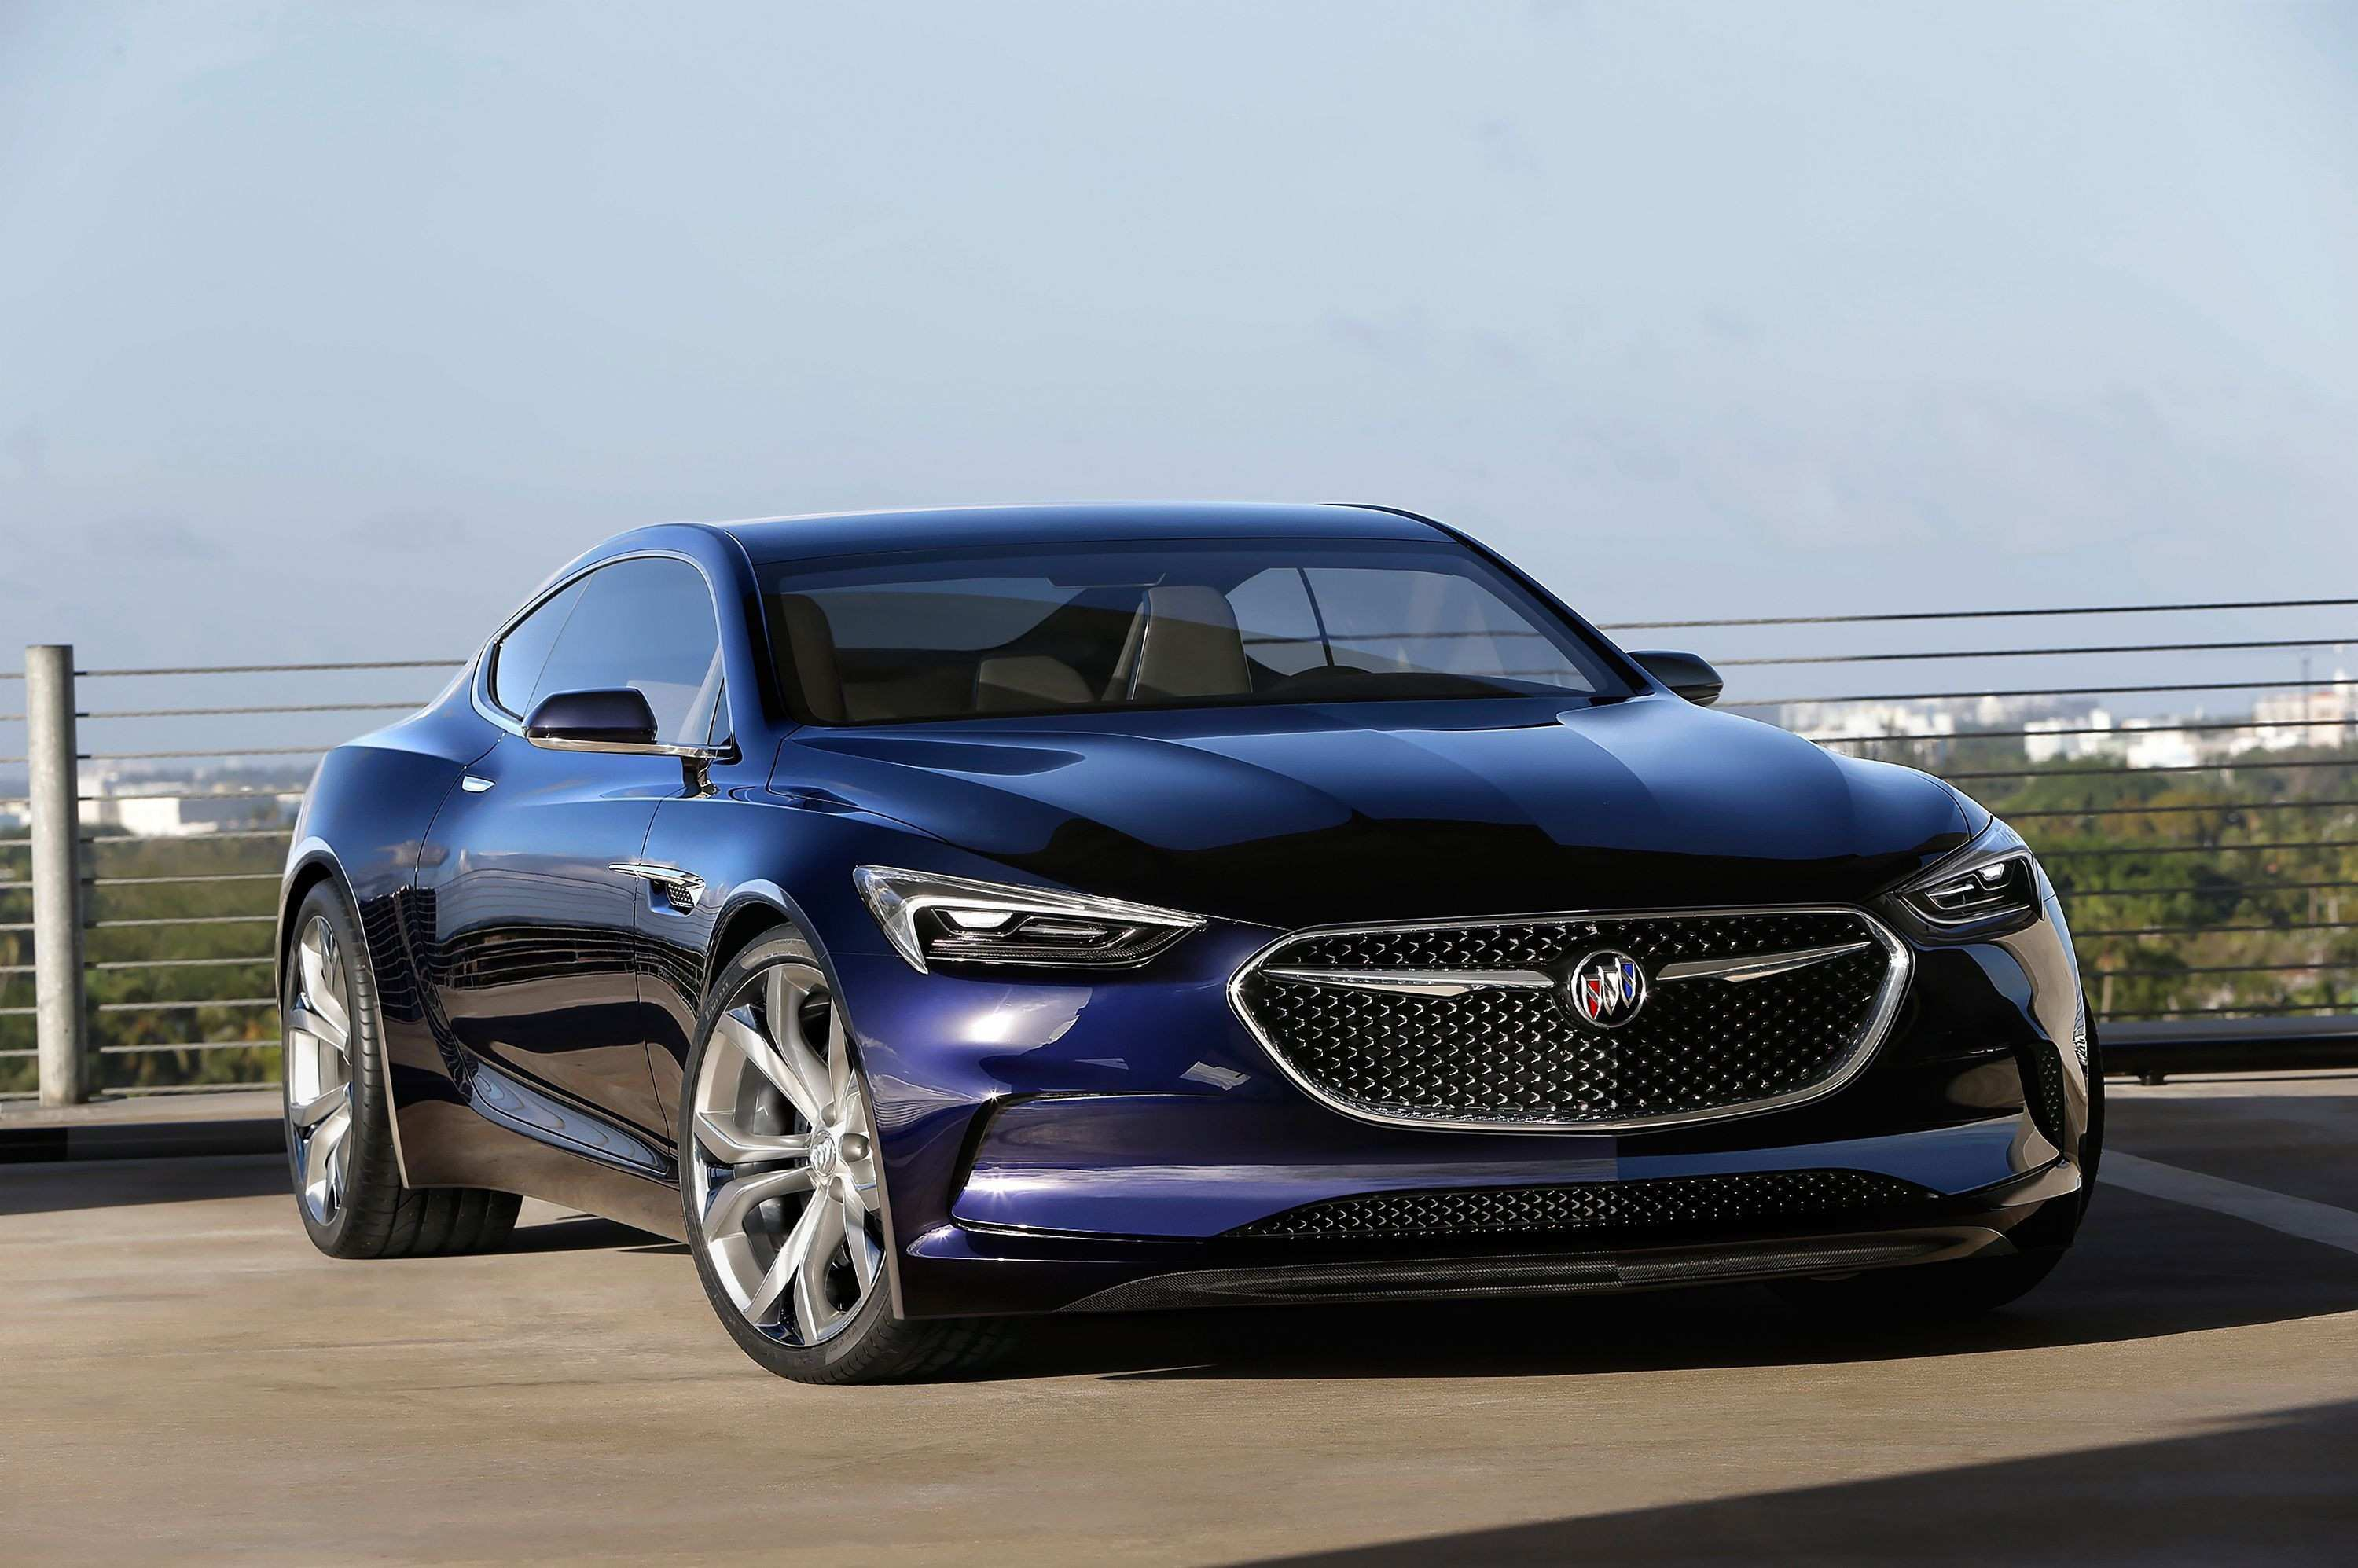 71 New 2020 Buick Regal Concept